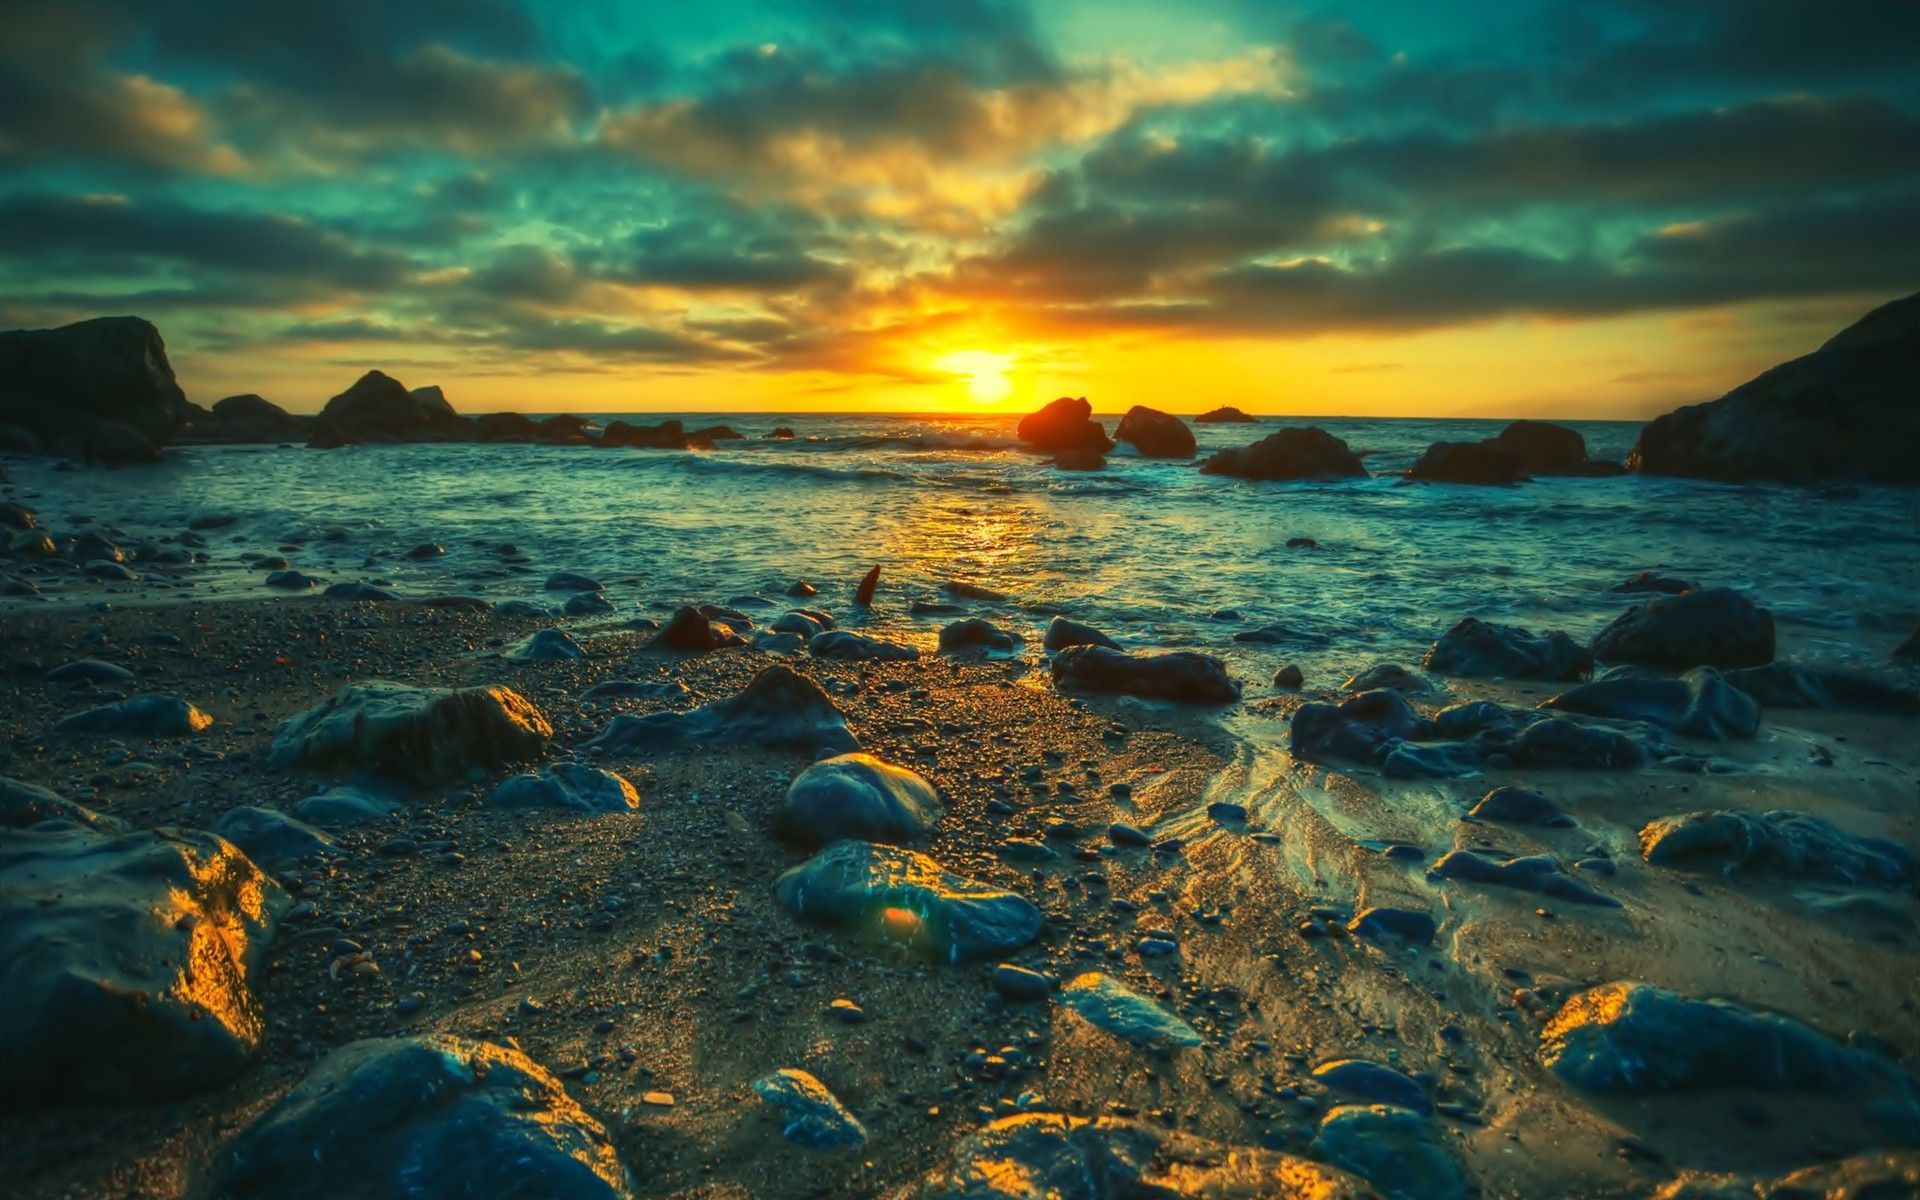 Hd Wallpapers Nature And Landscape Hd Widescreen Wallpapers Sunset Landscape Hd Landscape Beautiful Sunset